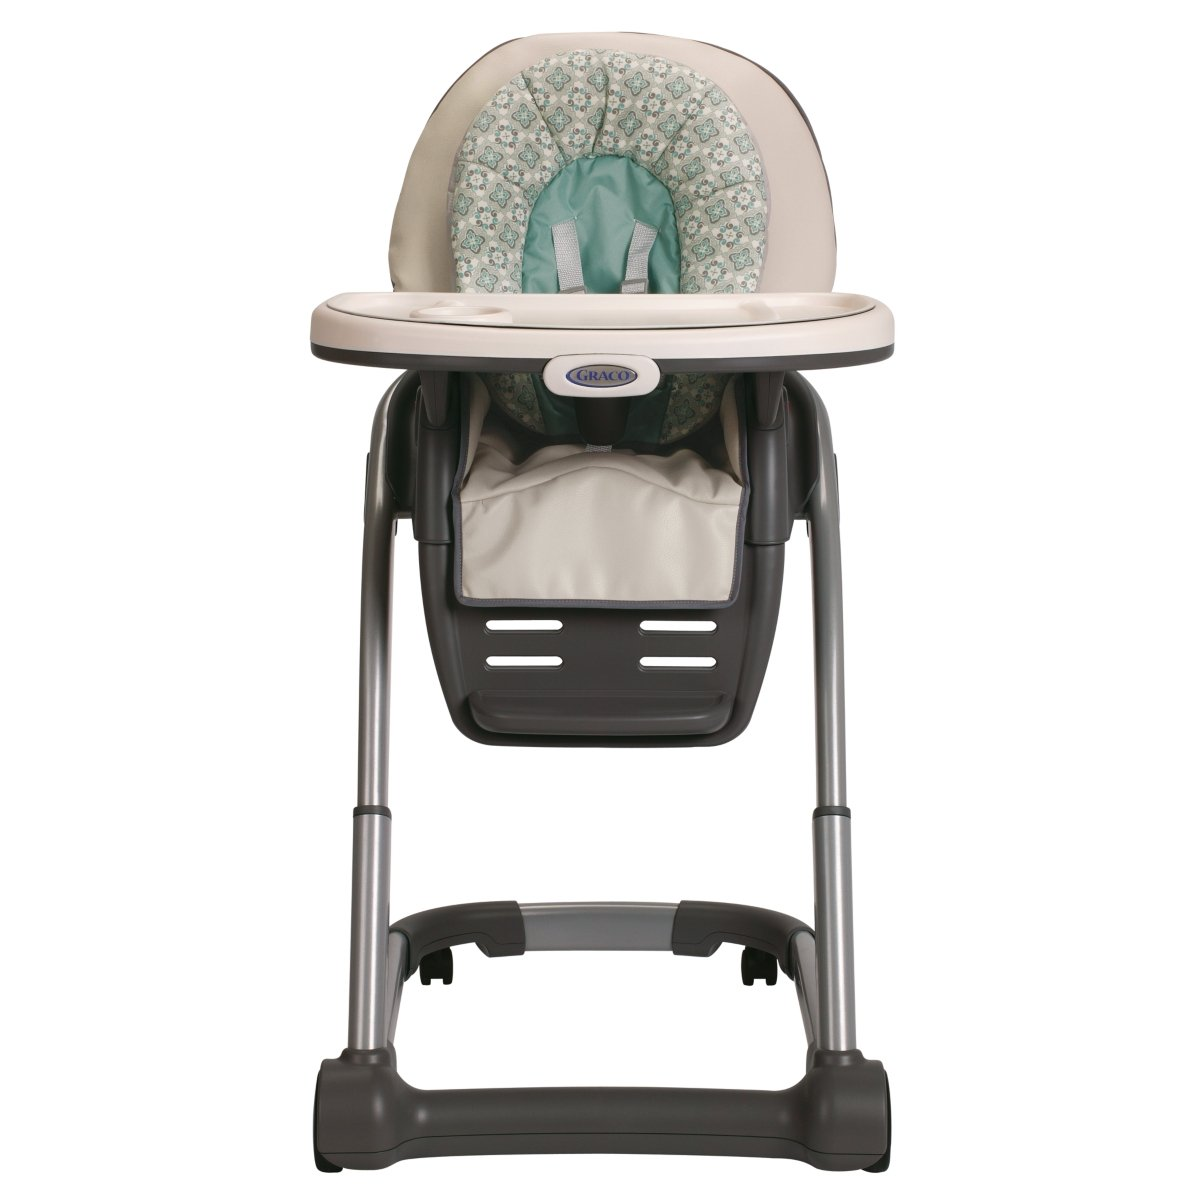 Graco Blossom 4-in-1 Seating System, Winslet - Highchair To Infant Feeding Booster - Toddler Booster To Youth Chair - One Hand Removable Tray - Leatherette Seat Pad (1812898)